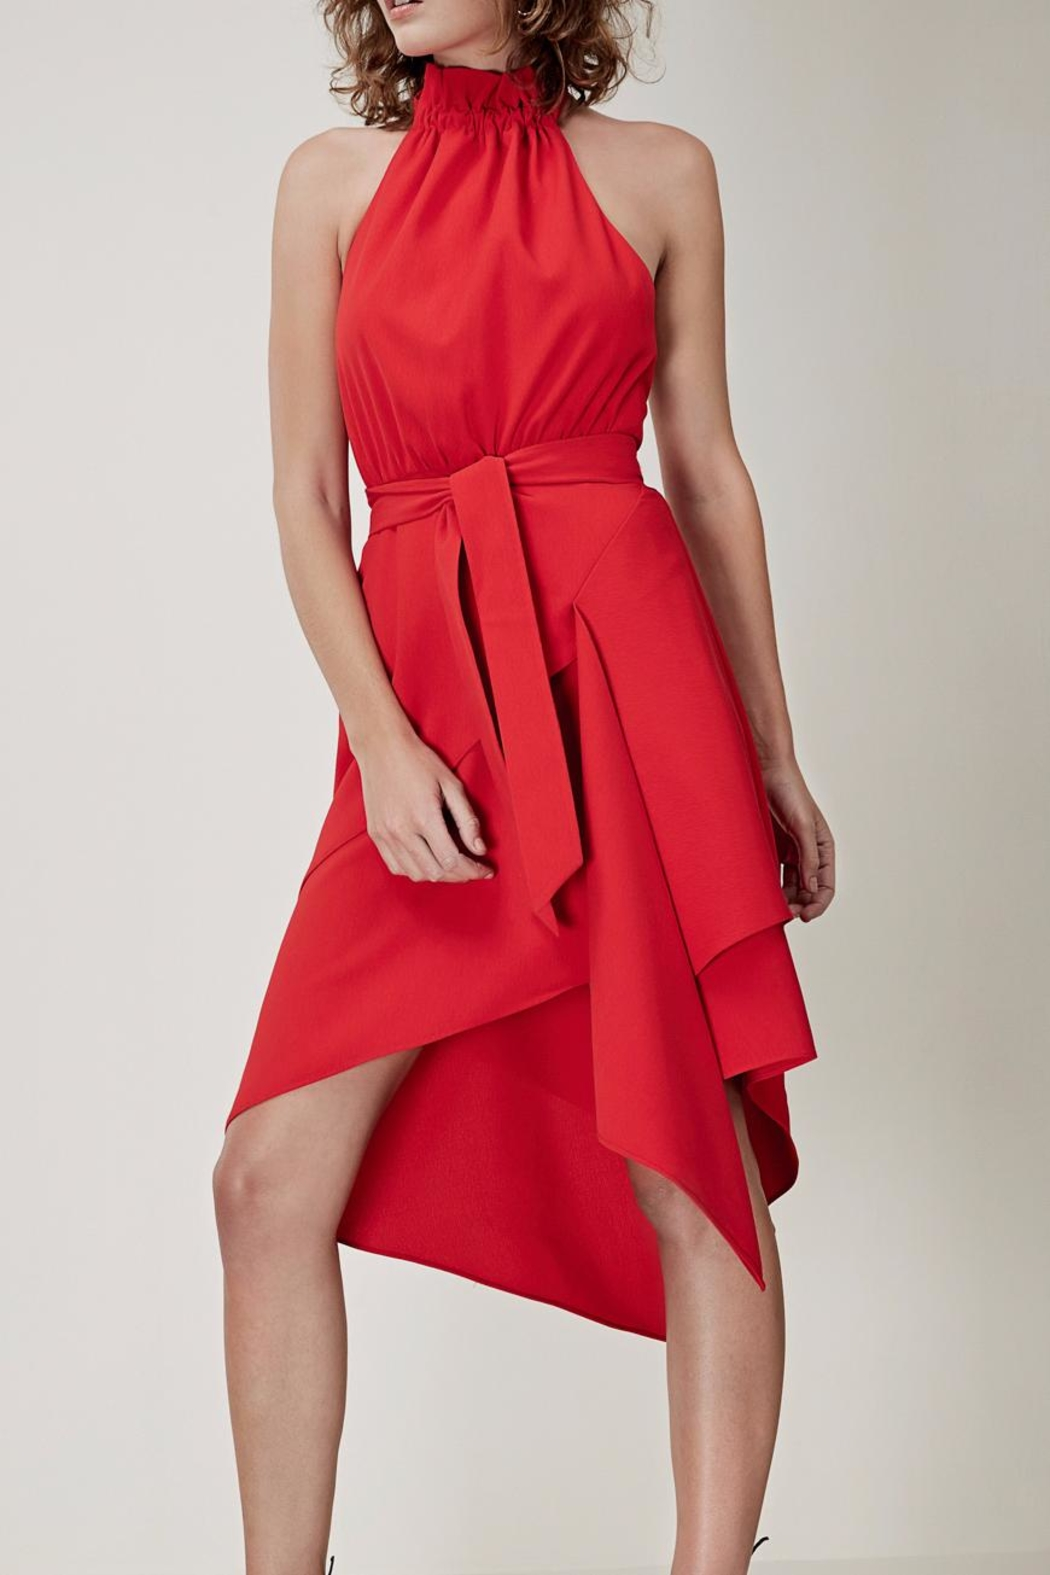 C/MEO COLLECTIVE Halter Neck Dress - Main Image